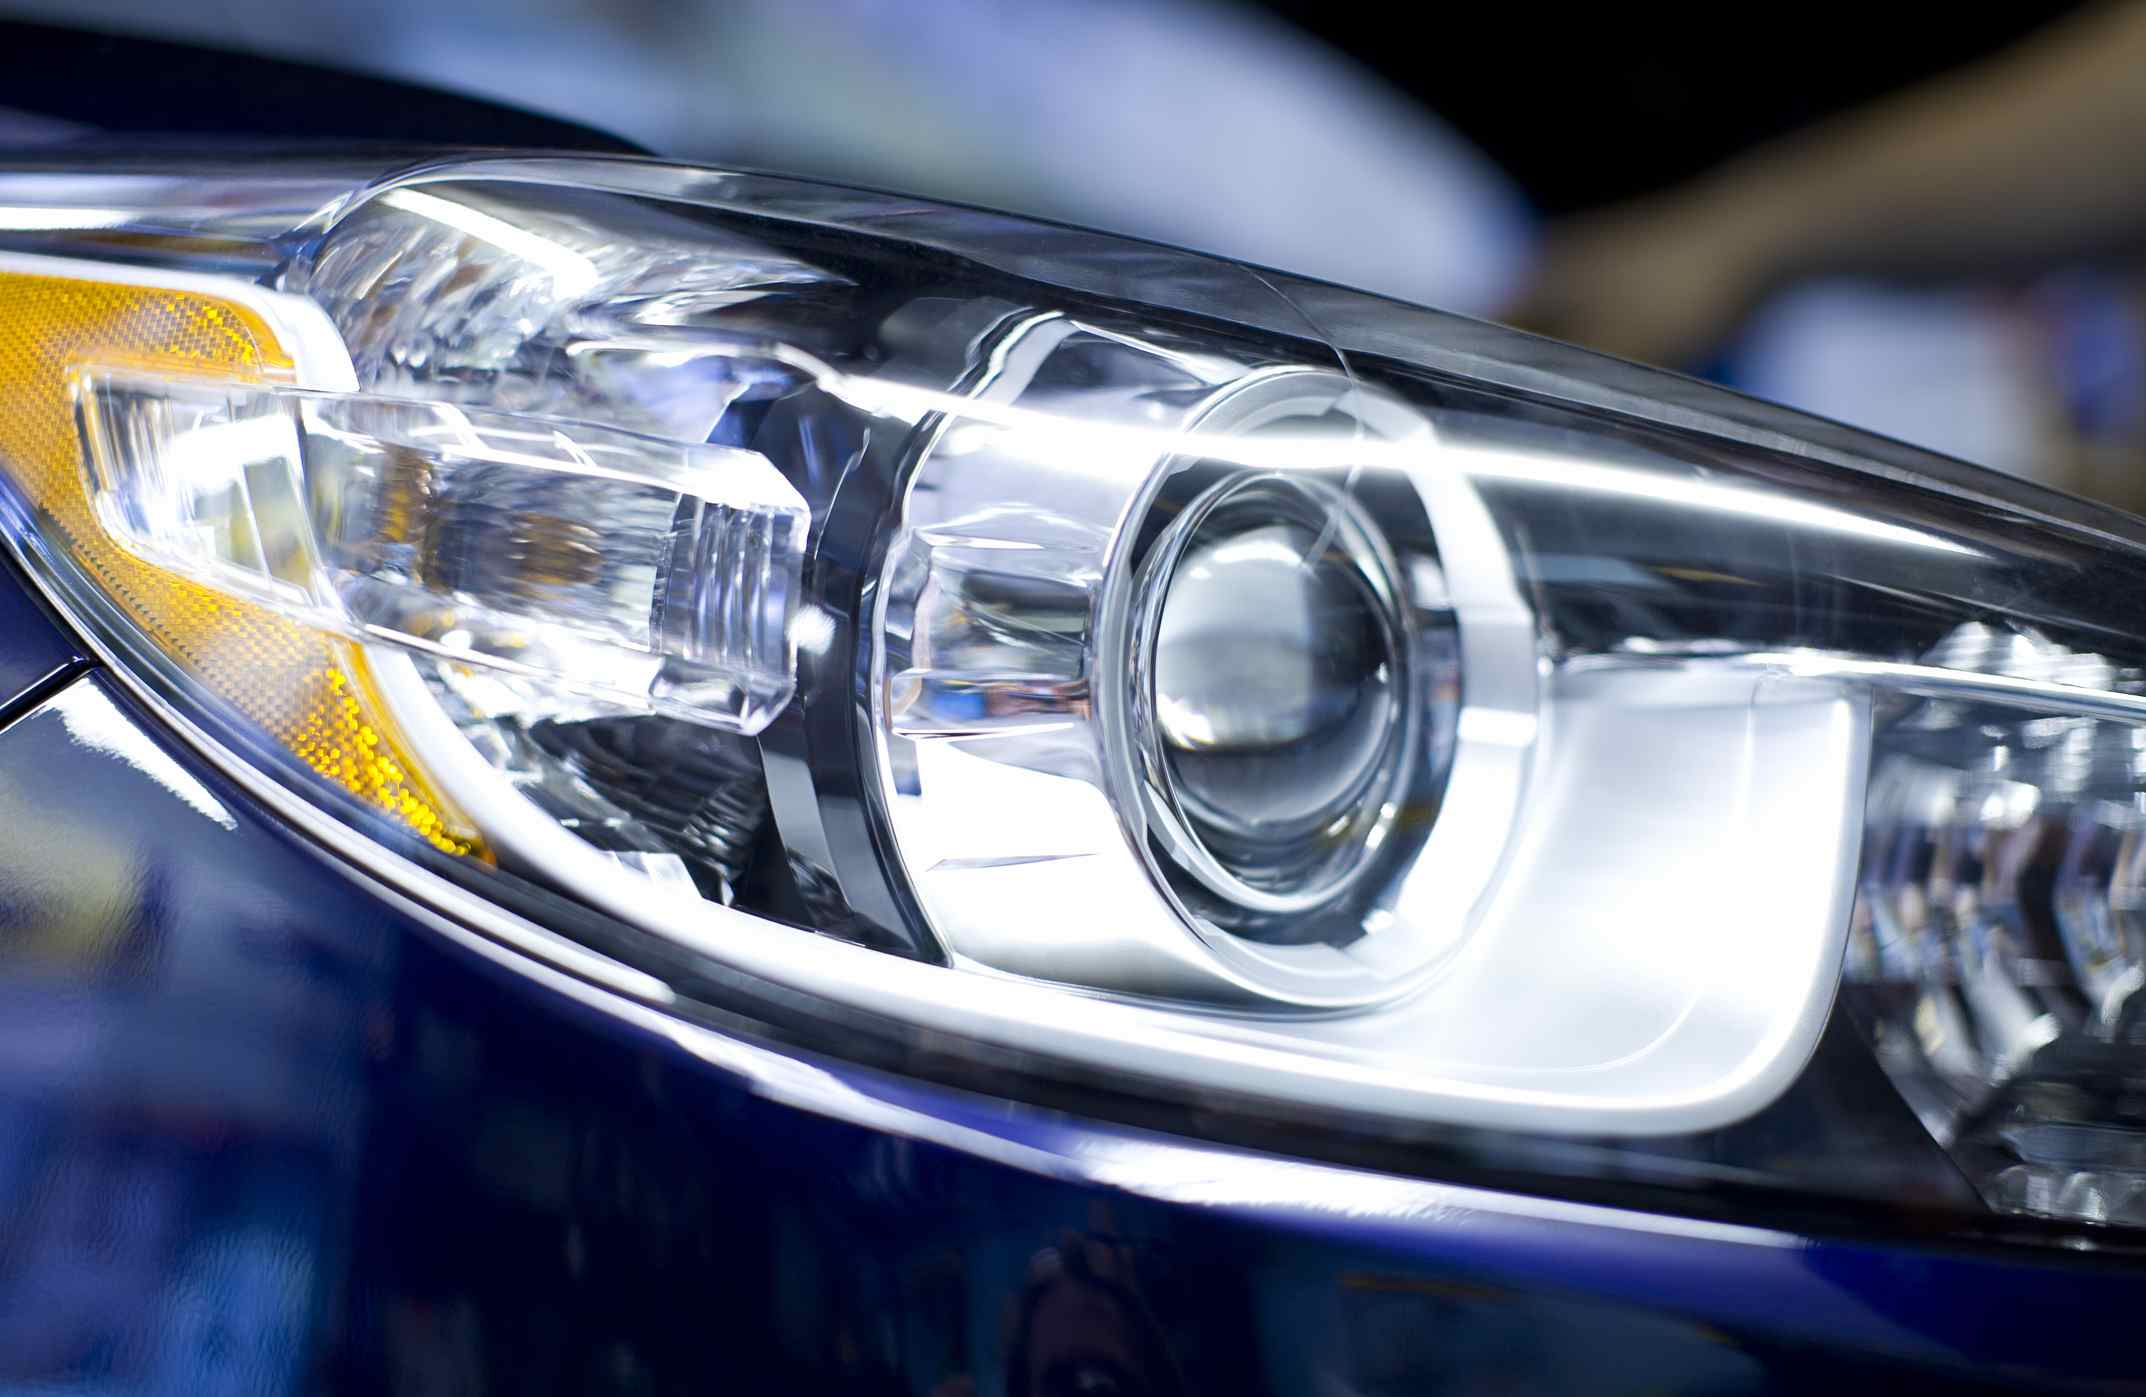 Hid Headlight Closeup